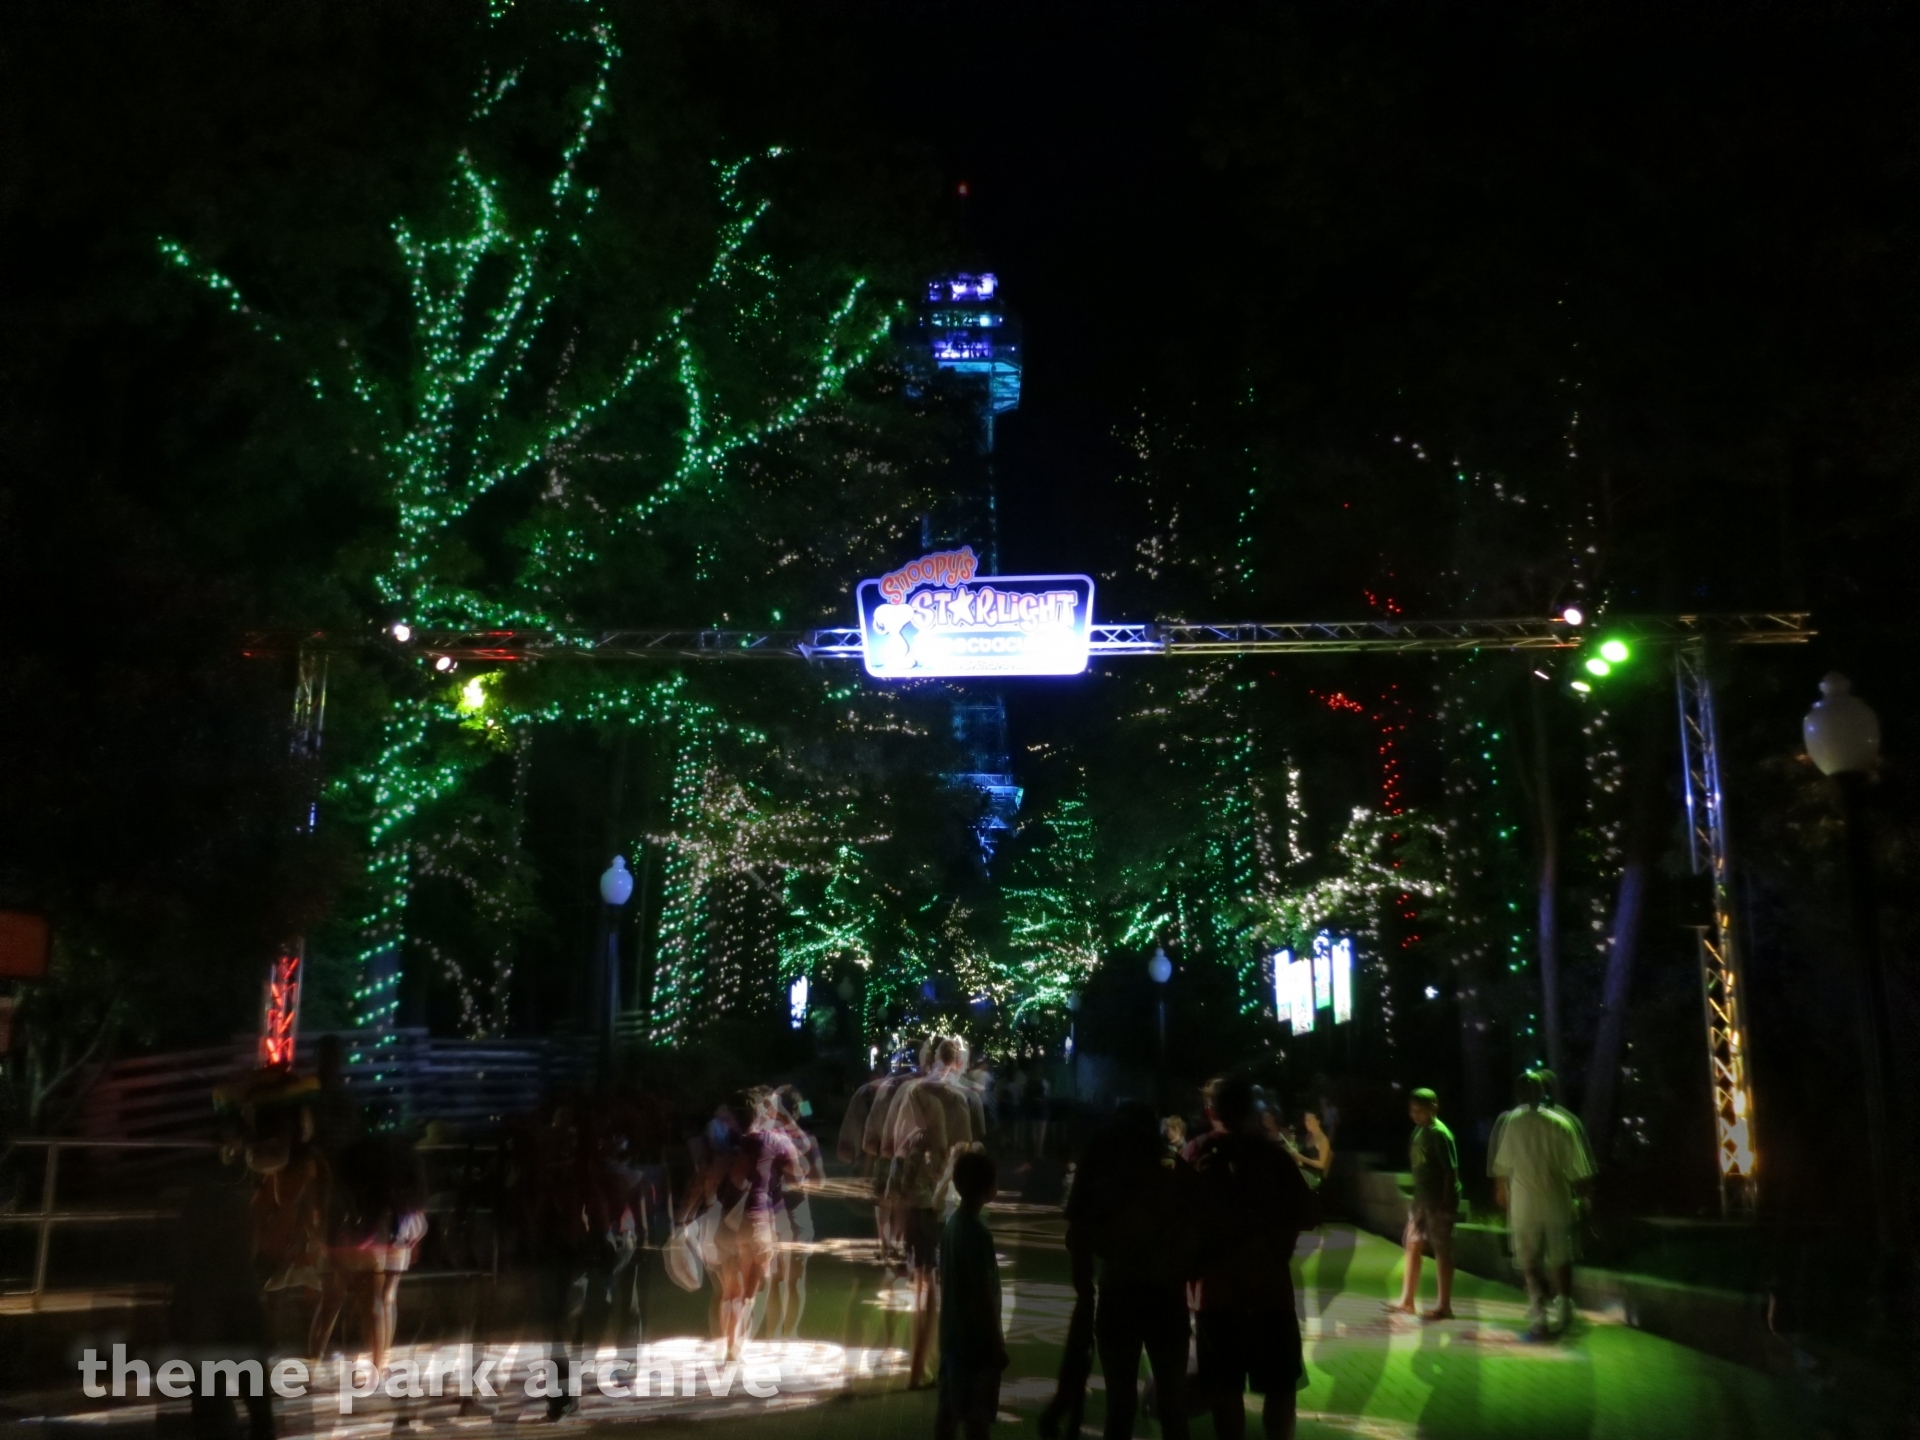 Starlight Spectacular at Kings Dominion | Theme Park Archive